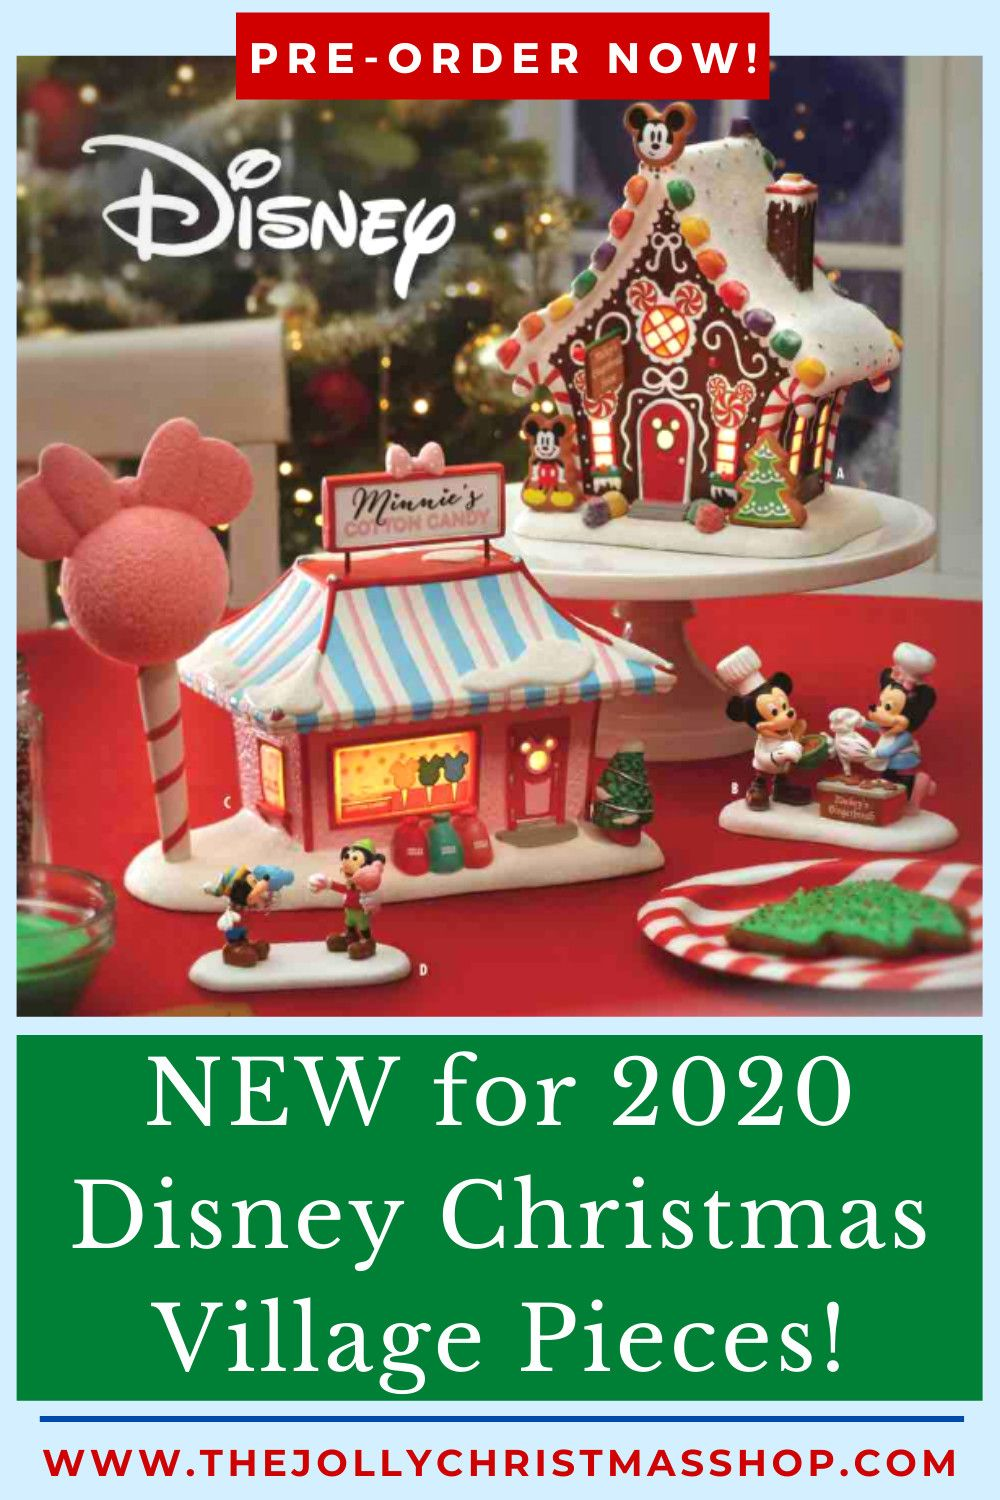 We've got some HOT! HPT! HOT! New Disney Village pieces for 2020!  Pre-order now to reserve yours!  #disneychristmas #disneychristmasvillage